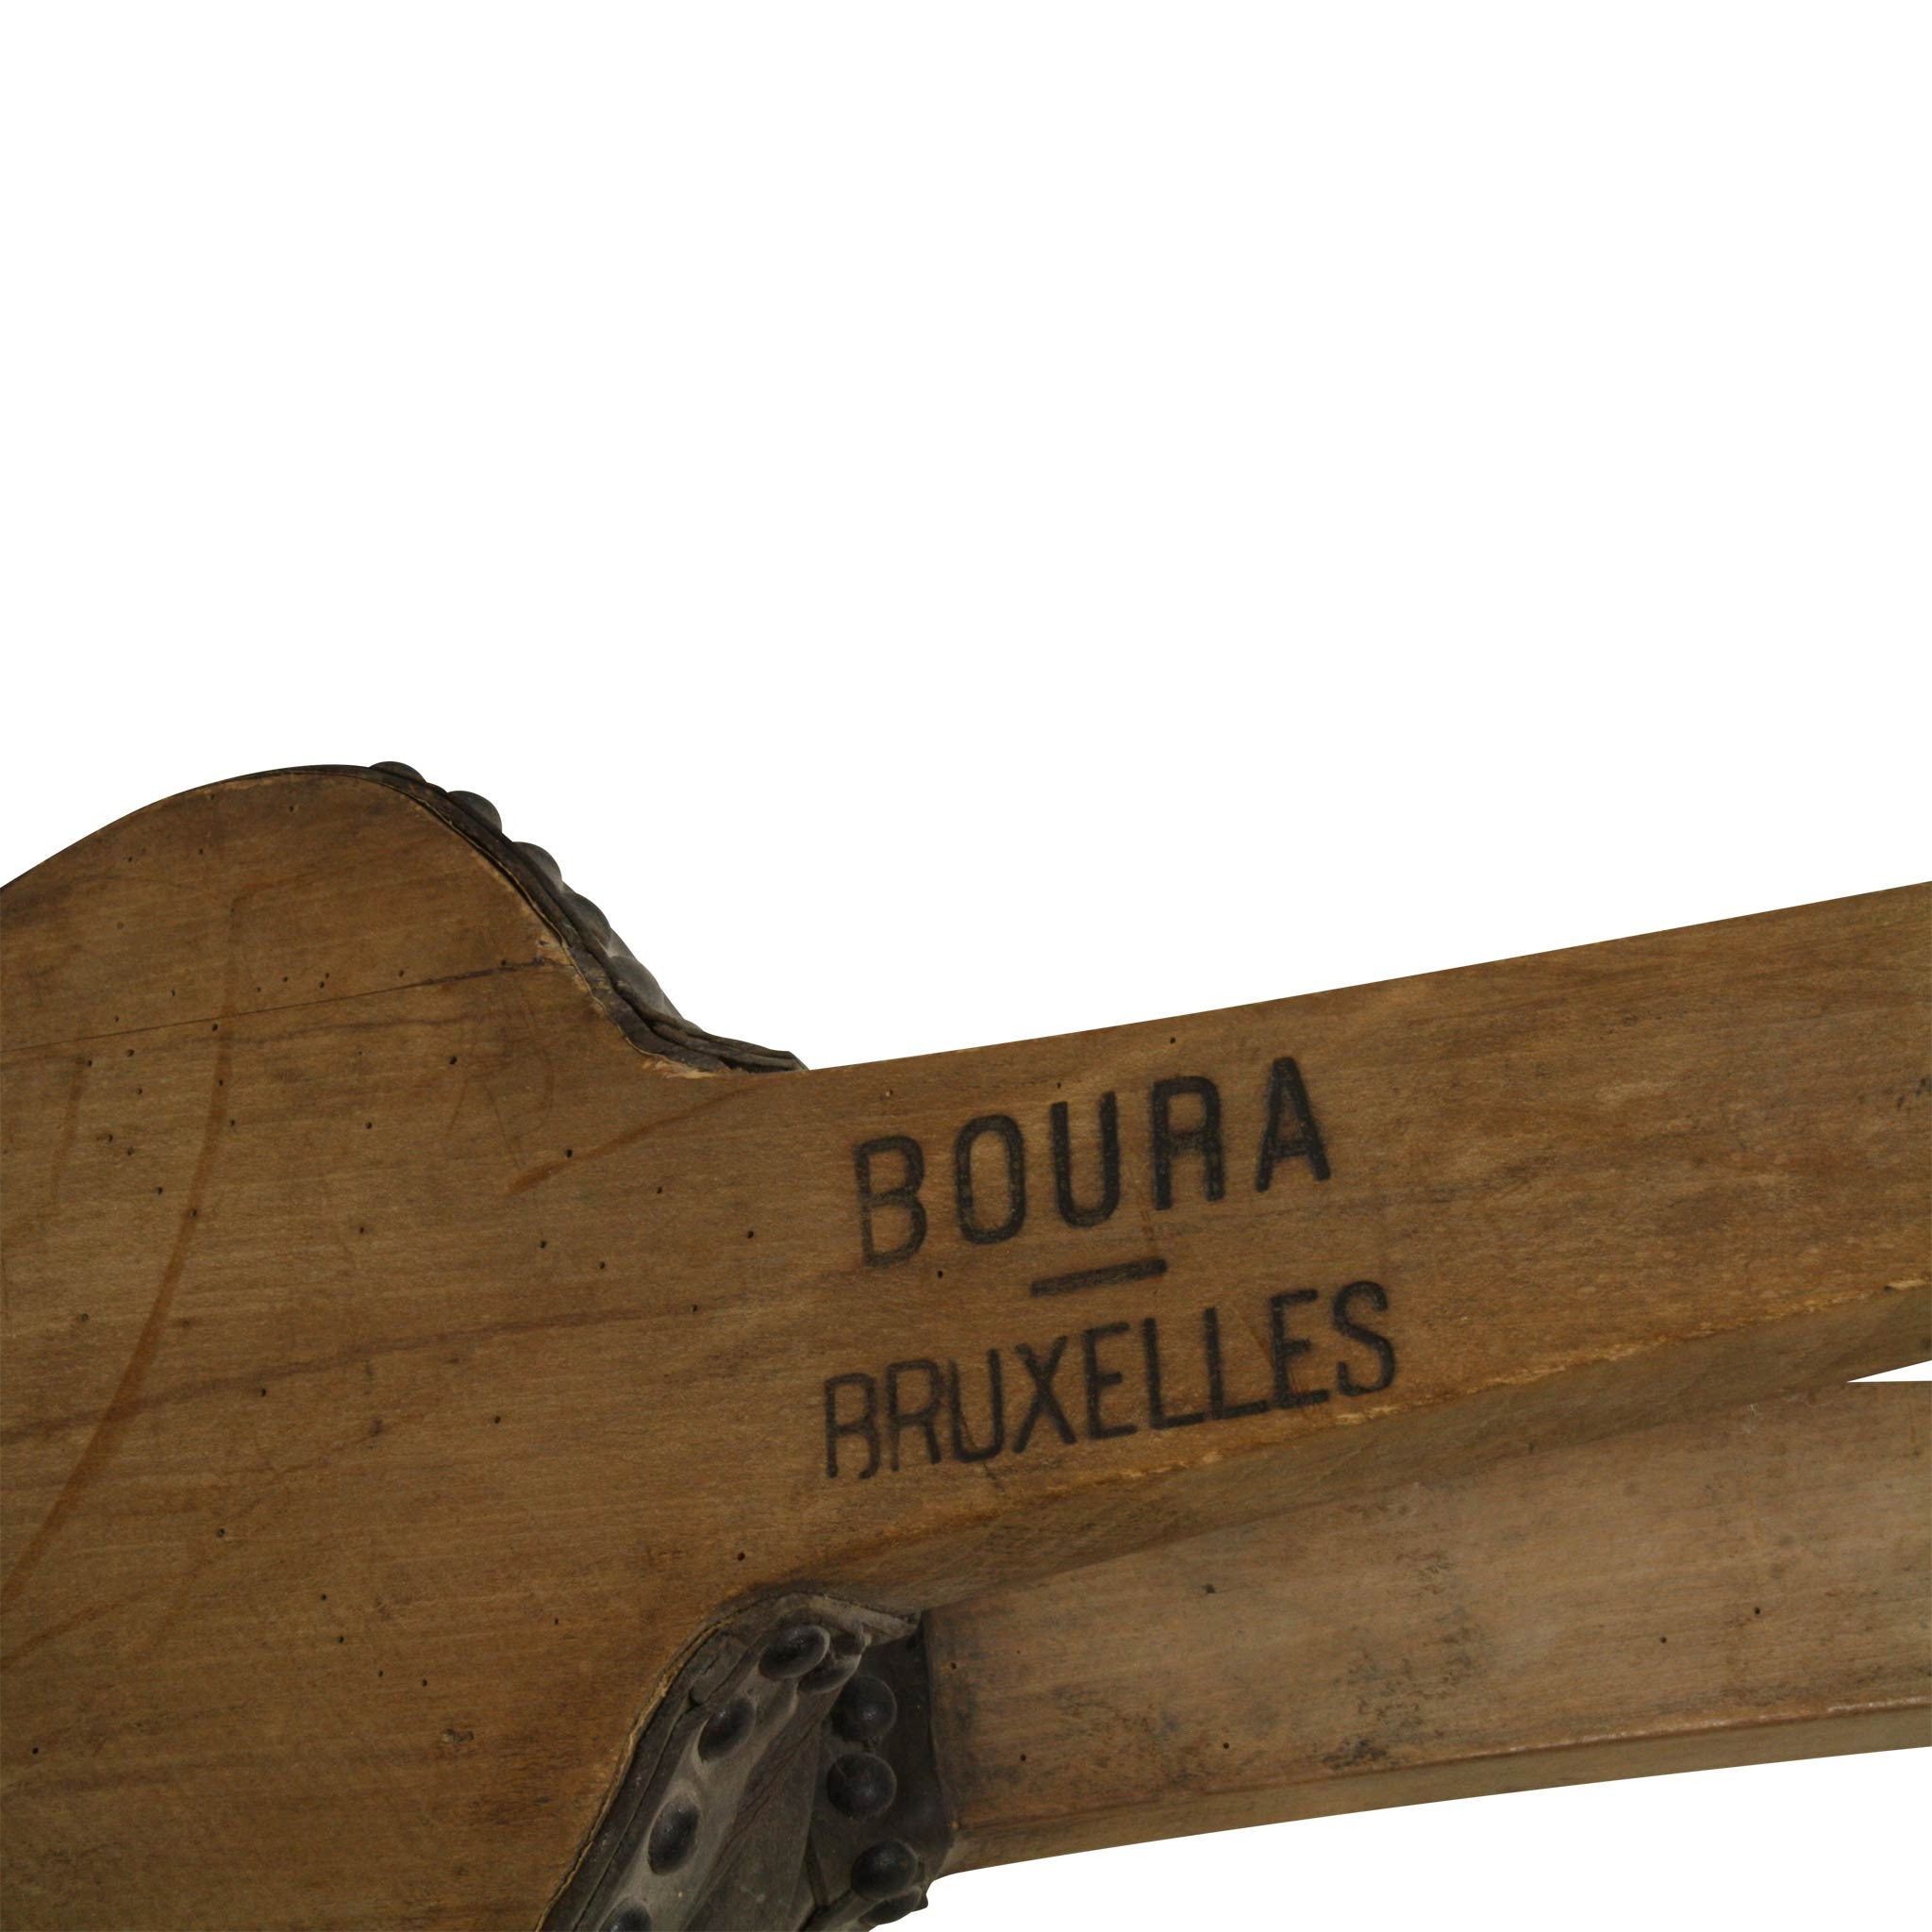 Boura Long Handled Bellows Bruxxels